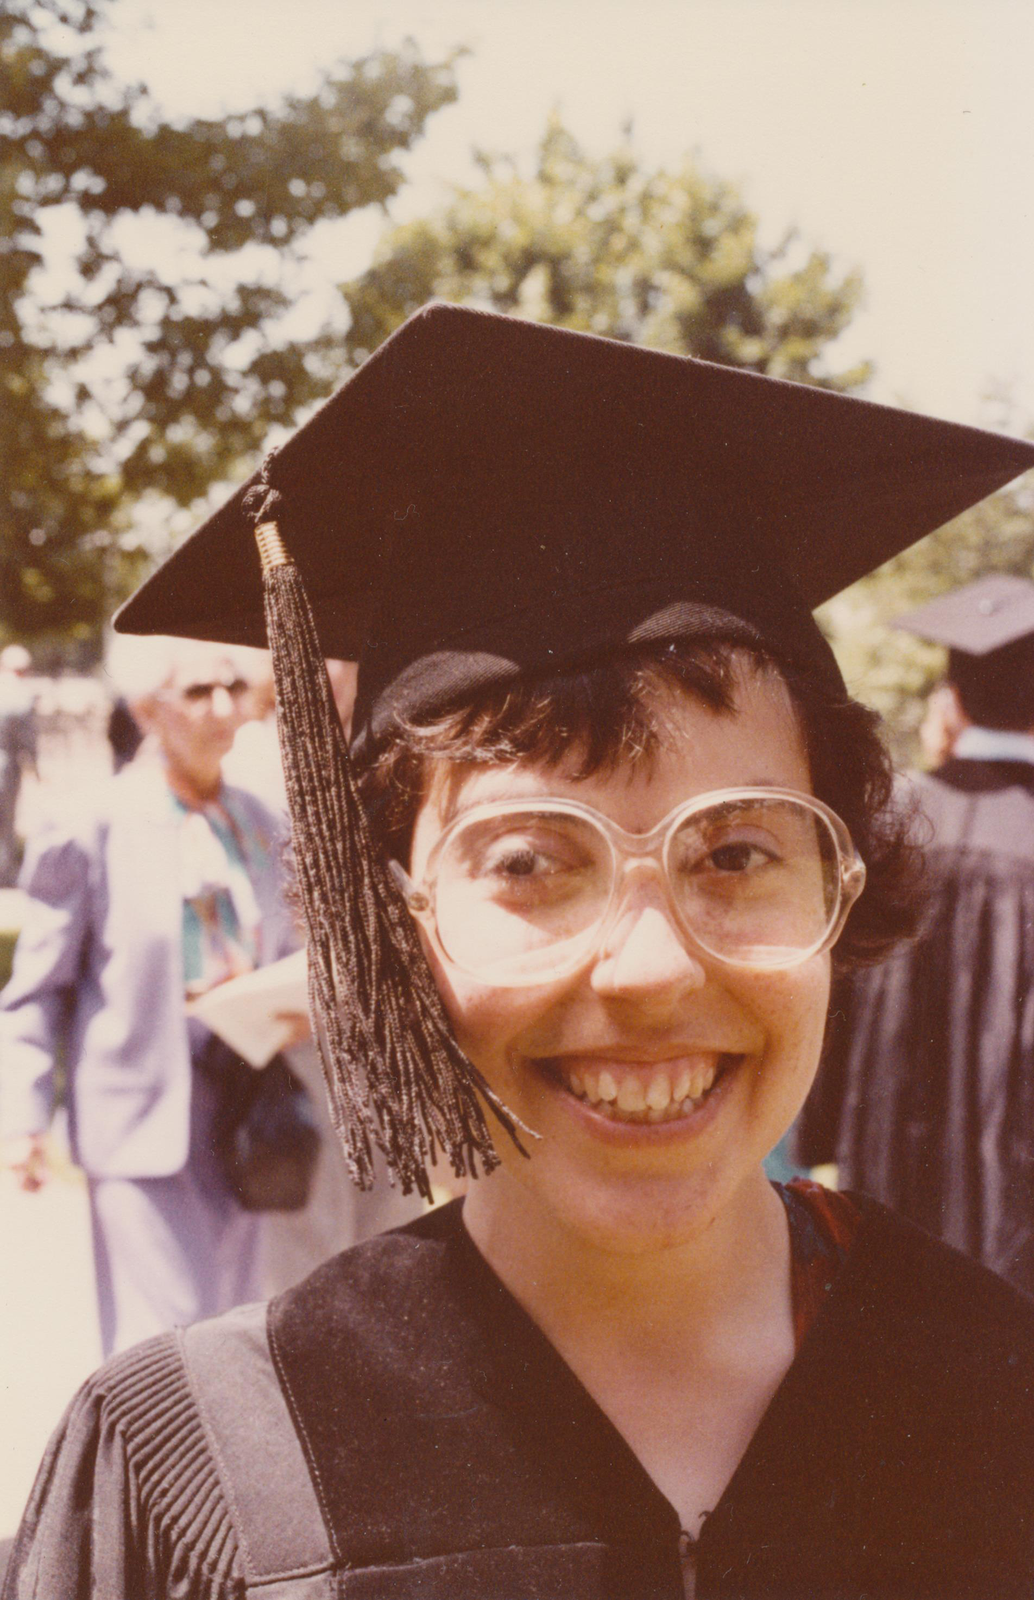 Janet at her graduation from Harvard Law School in 1983.